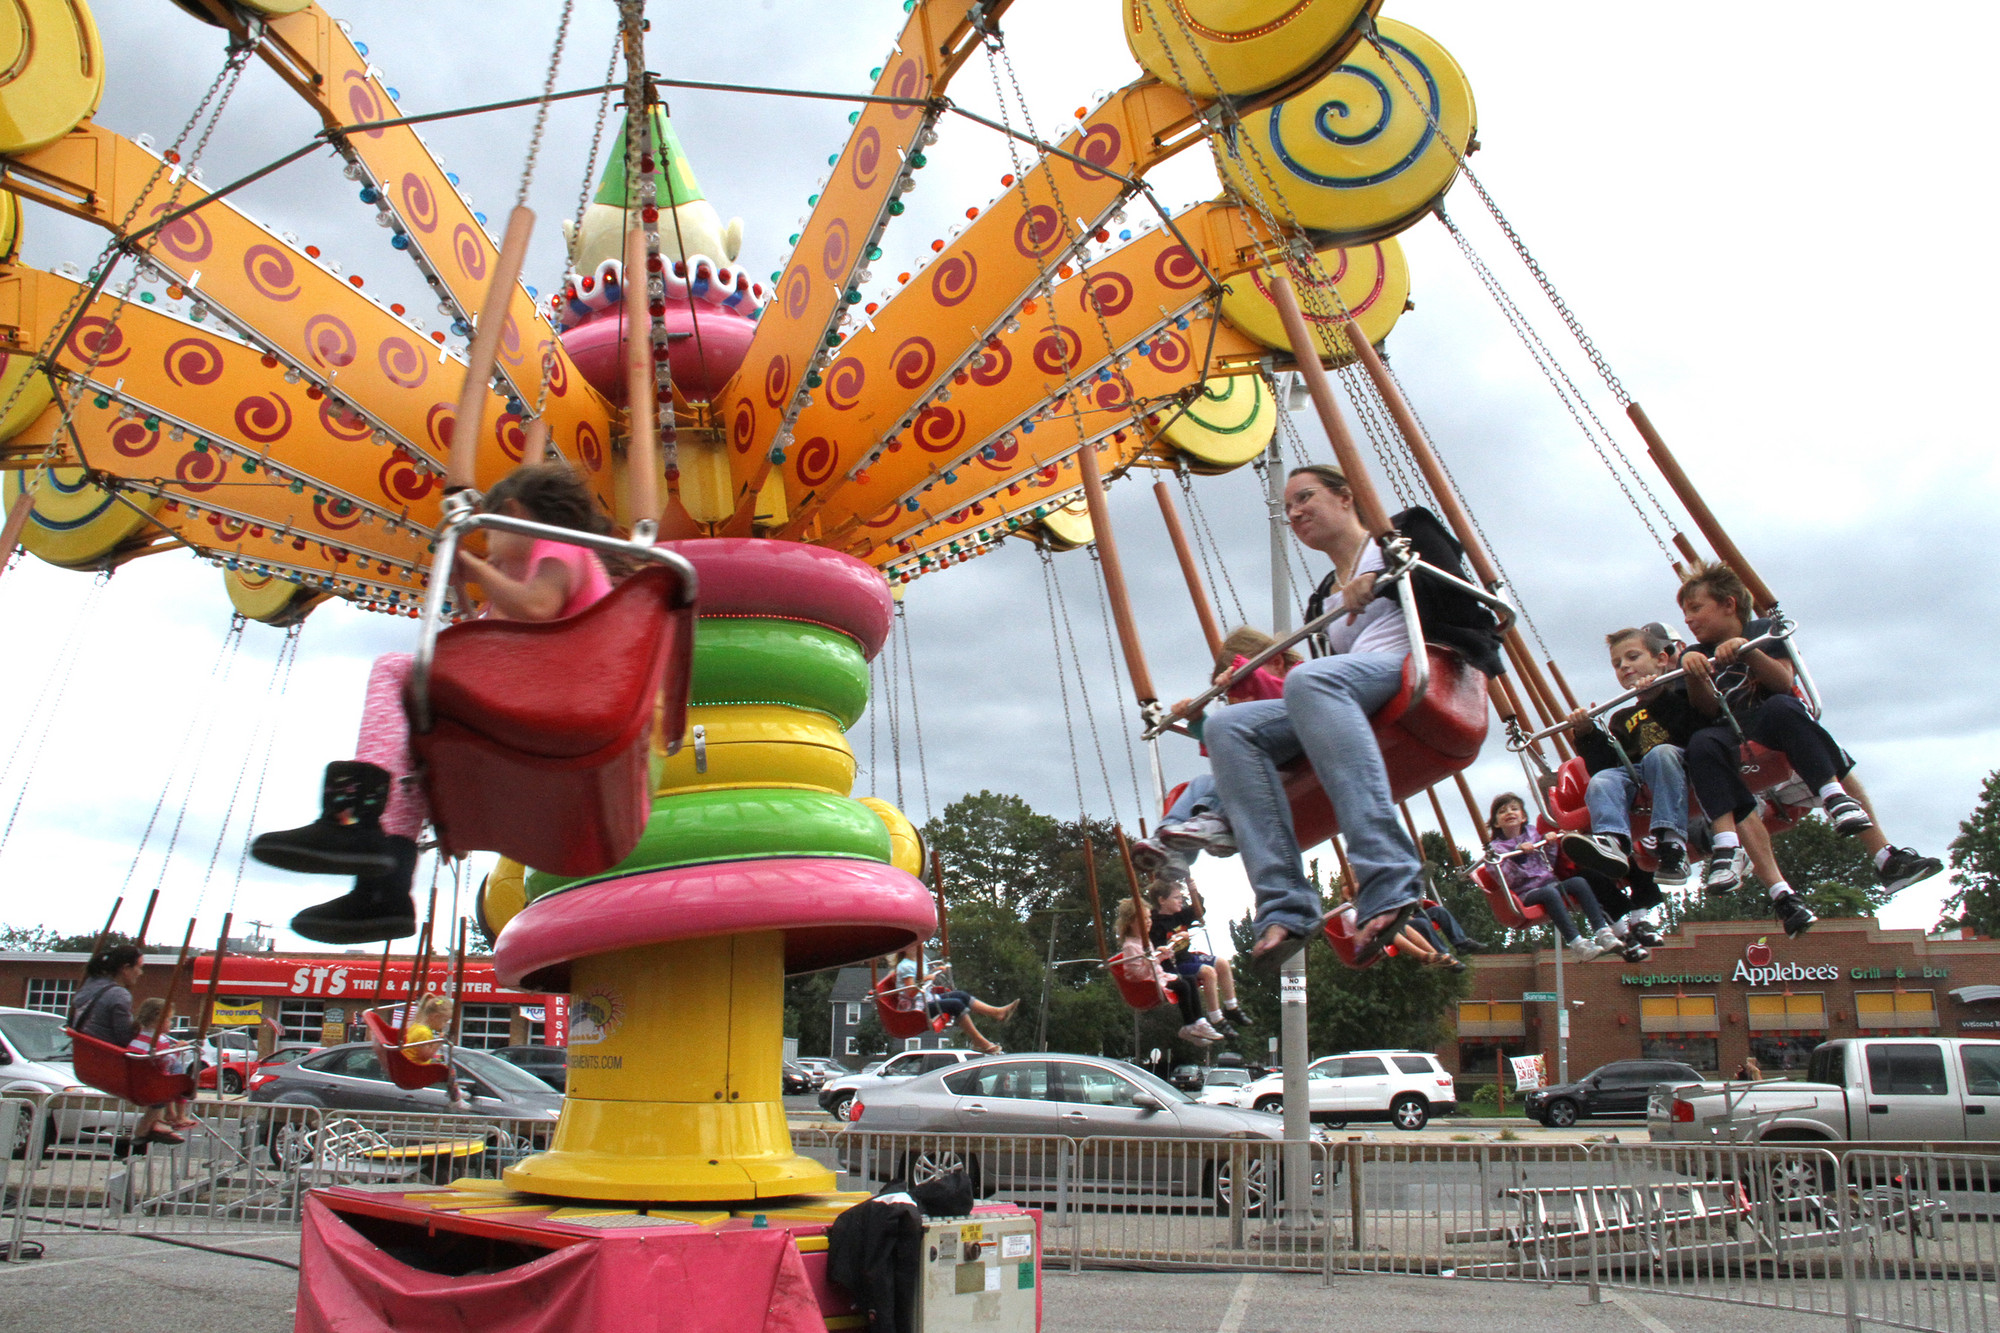 Fair-goers always find thrills at the carnival, a major attraction at the annual Bellmore Family Street Festival, which opens Sept. 19.